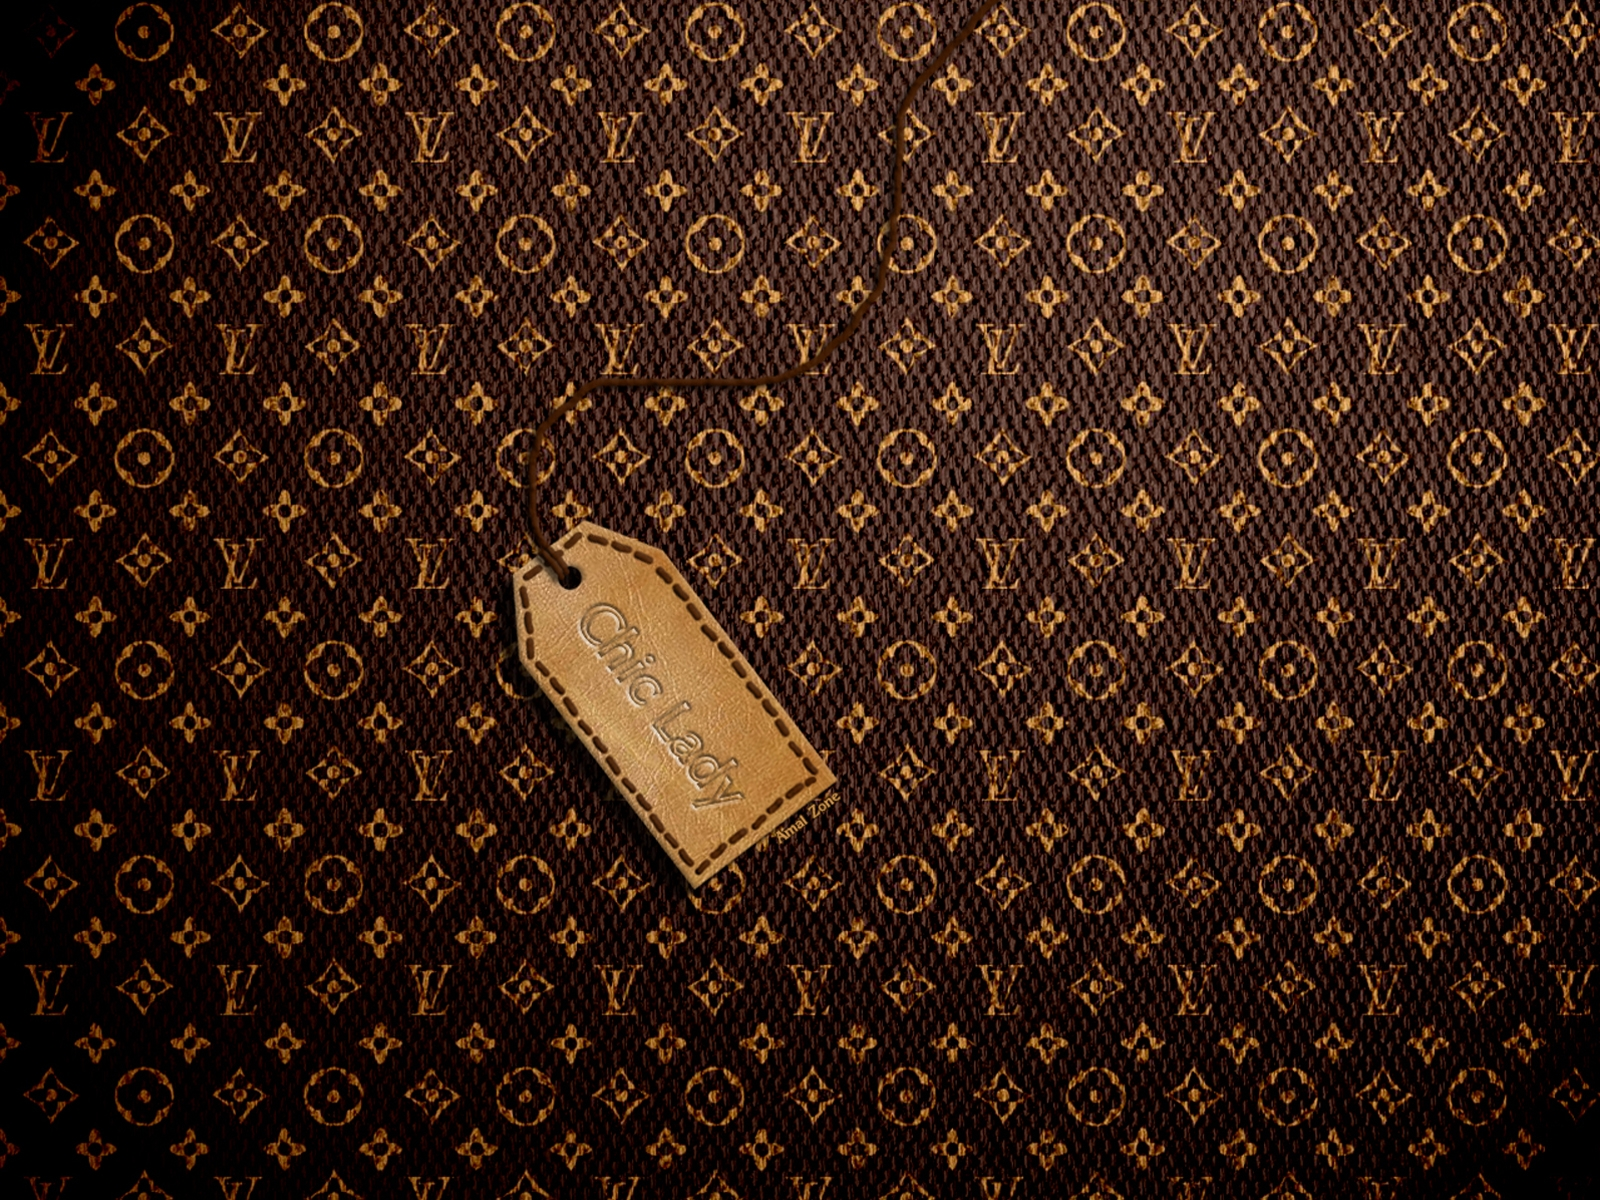 Supreme X Louis Vuitton Wallpaper Computer City Of Kenmore Washington